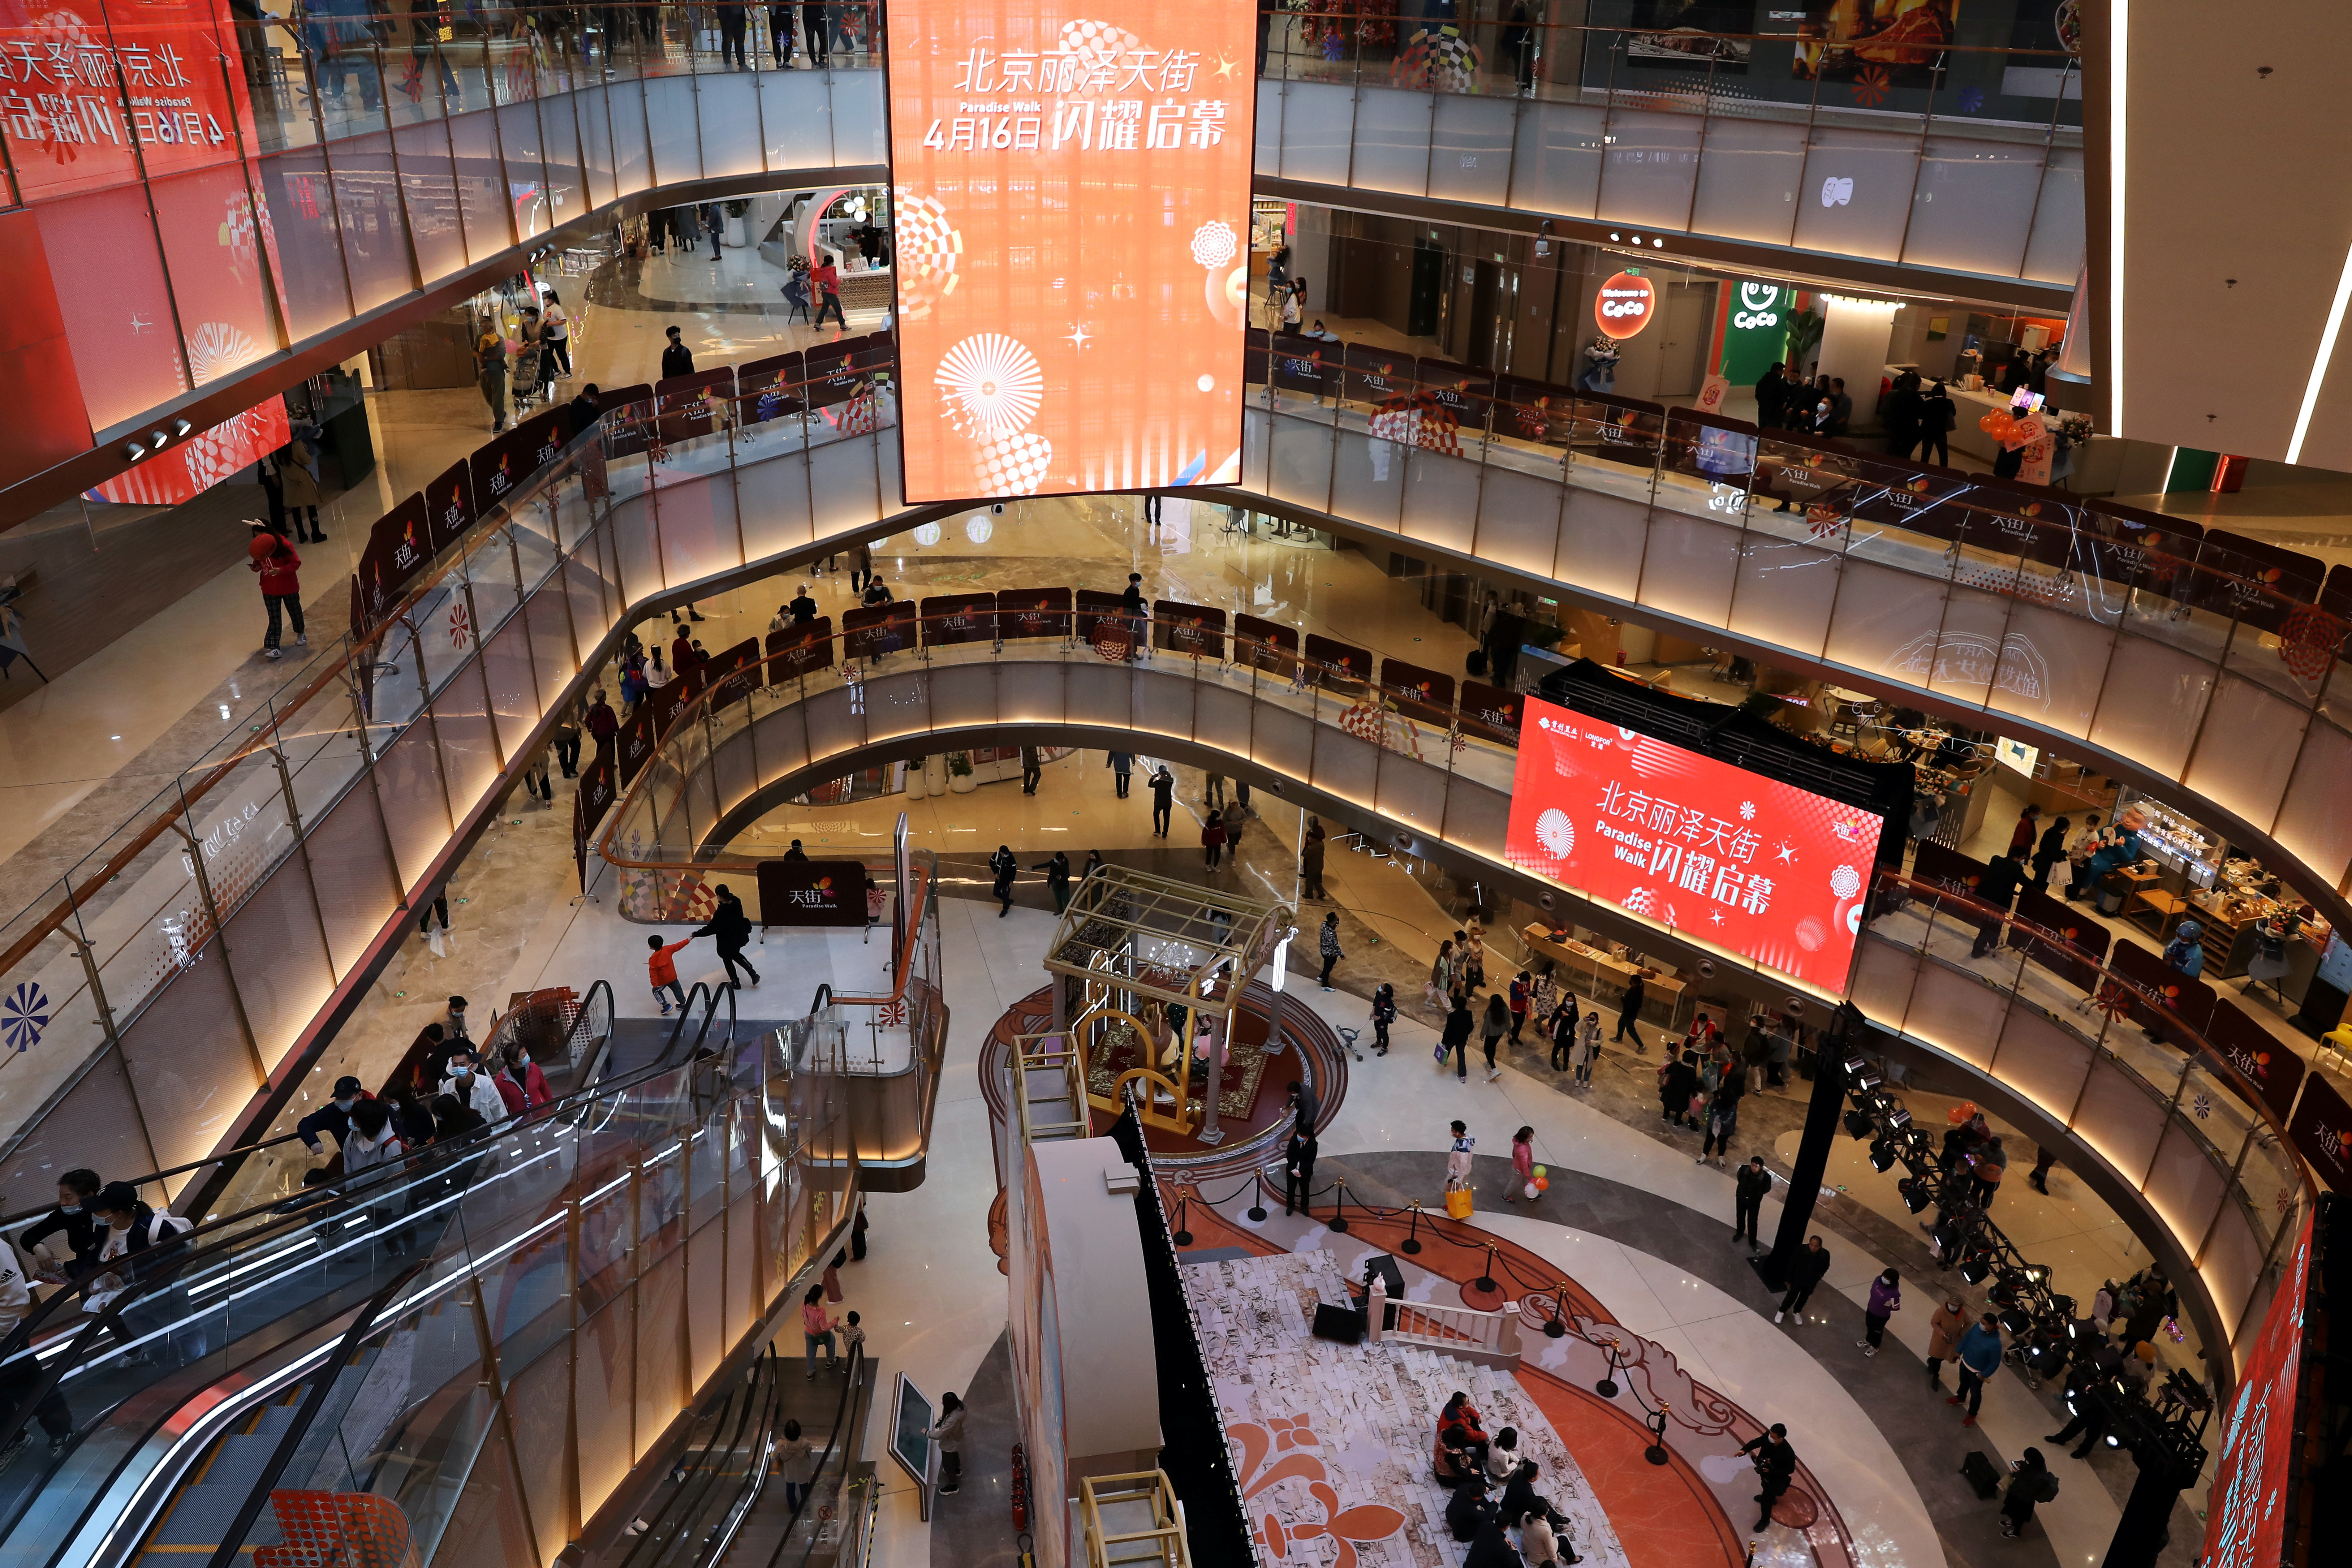 People visit a newly opened shopping mall in Beijing, China April 16, 2021. REUTERS/Tingshu Wang